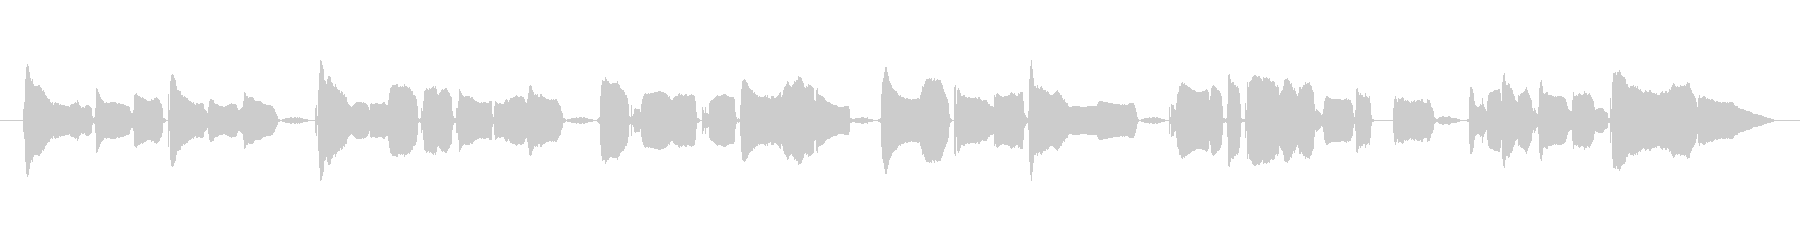 Kagome Kagome female a cappella's unreproduced waveform